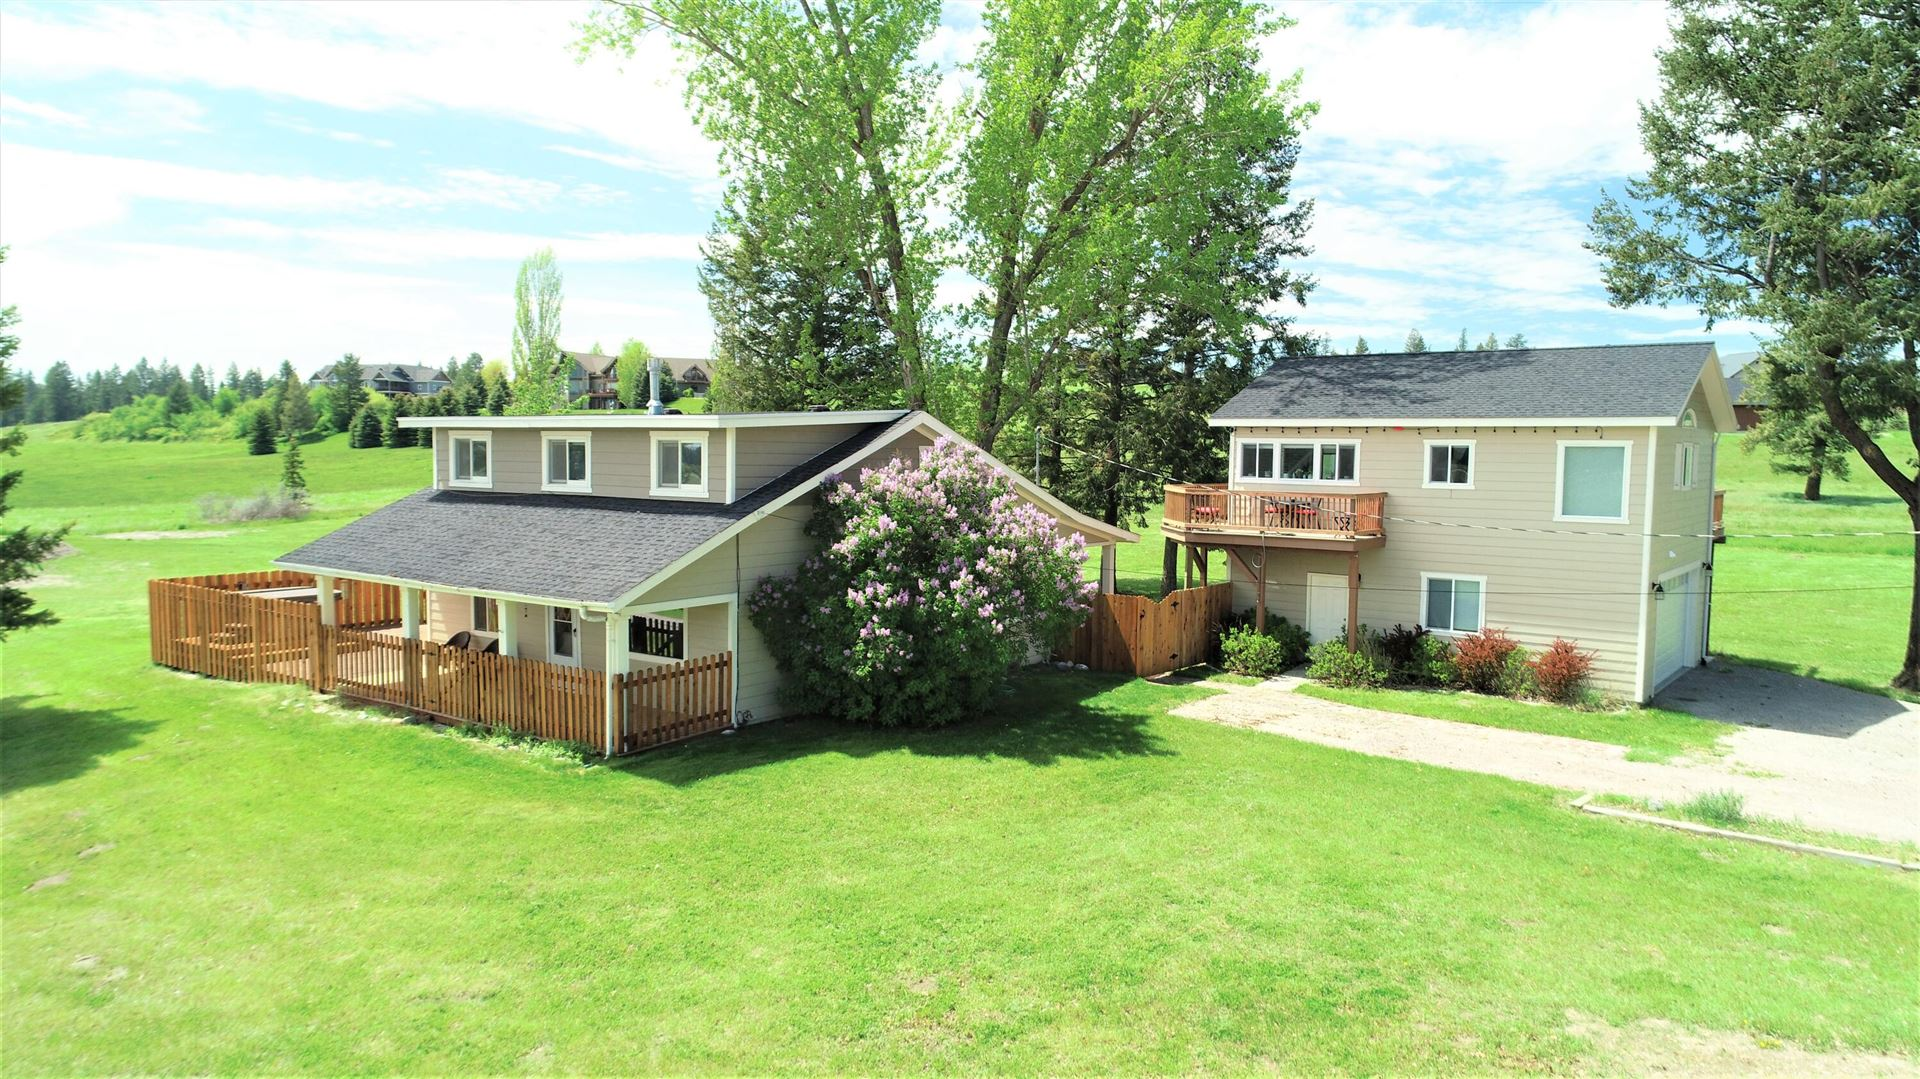 Photo of 4018 Whitefish Stage, Kalispell, MT 59901 (MLS # 22114820)